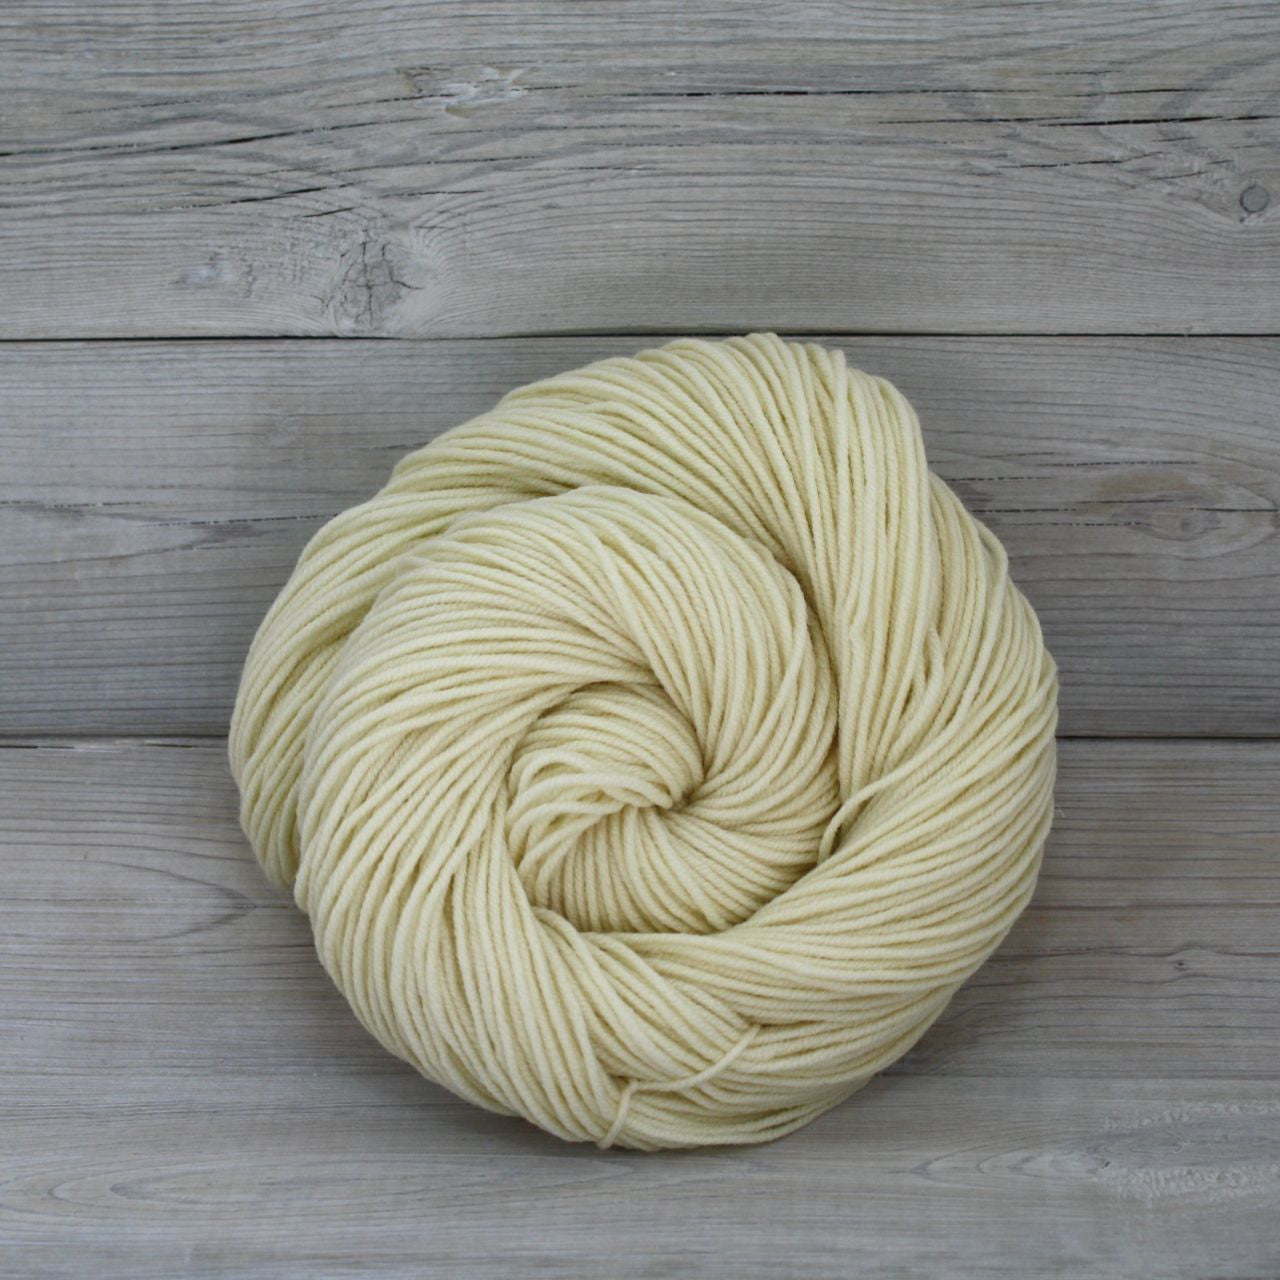 Luna Grey Fiber Arts Aspen Sport Yarn in Natural (Undyed)